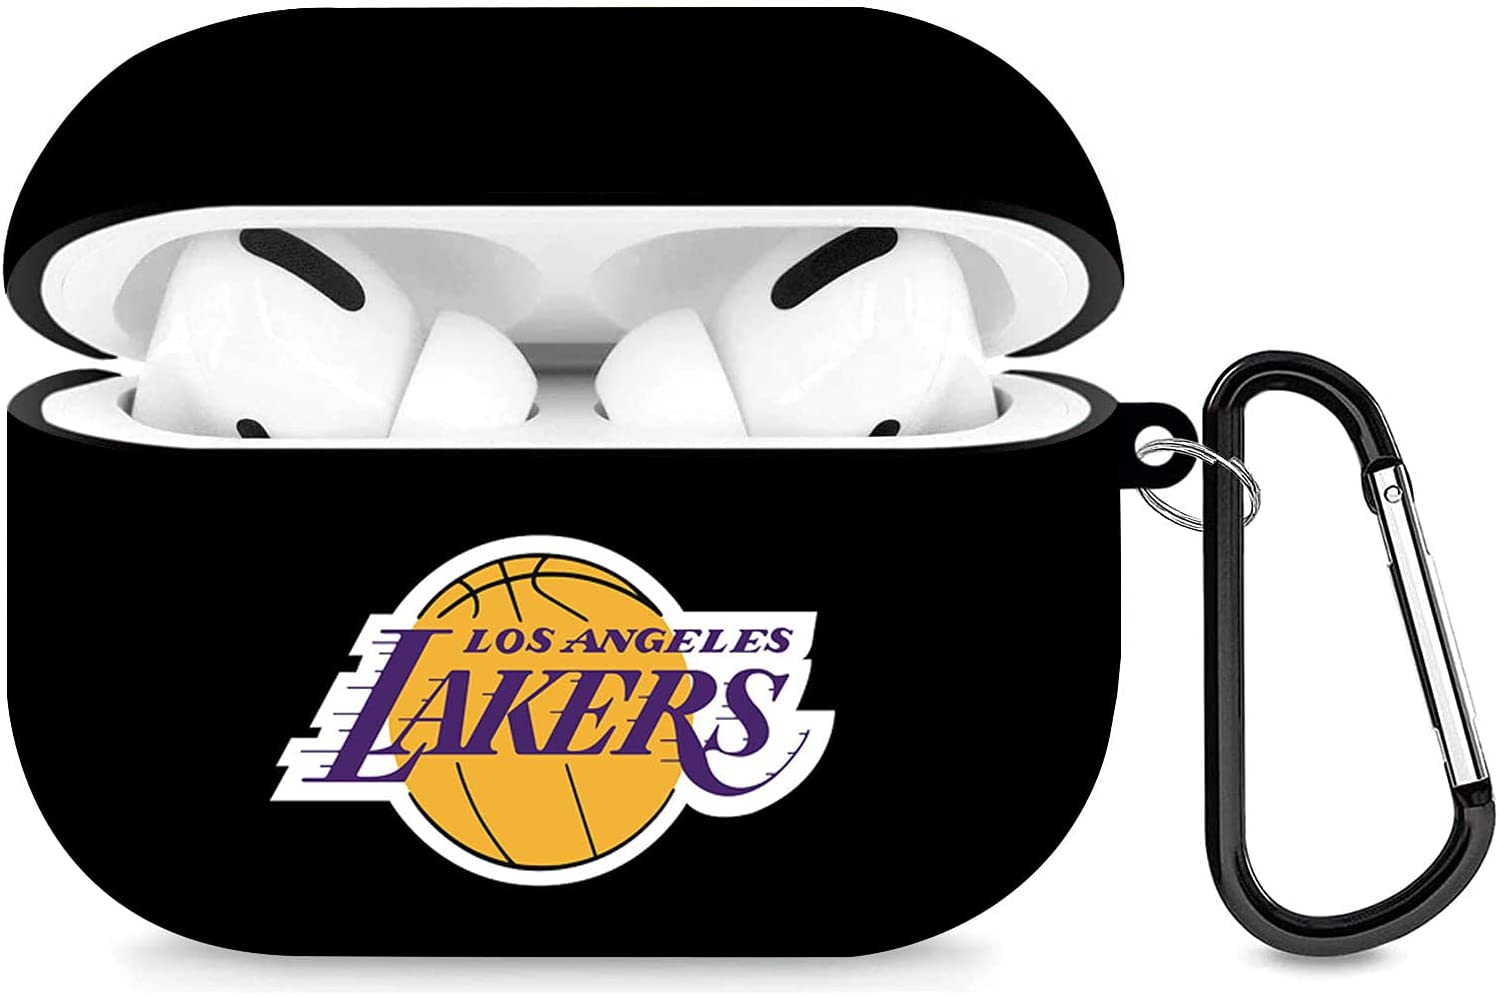 Basketball Fans Airpods Pro Case Compatible with AirPods Pro Full Protective Shockproof Wireless Earphone Case with Key Chain for Girls Boys